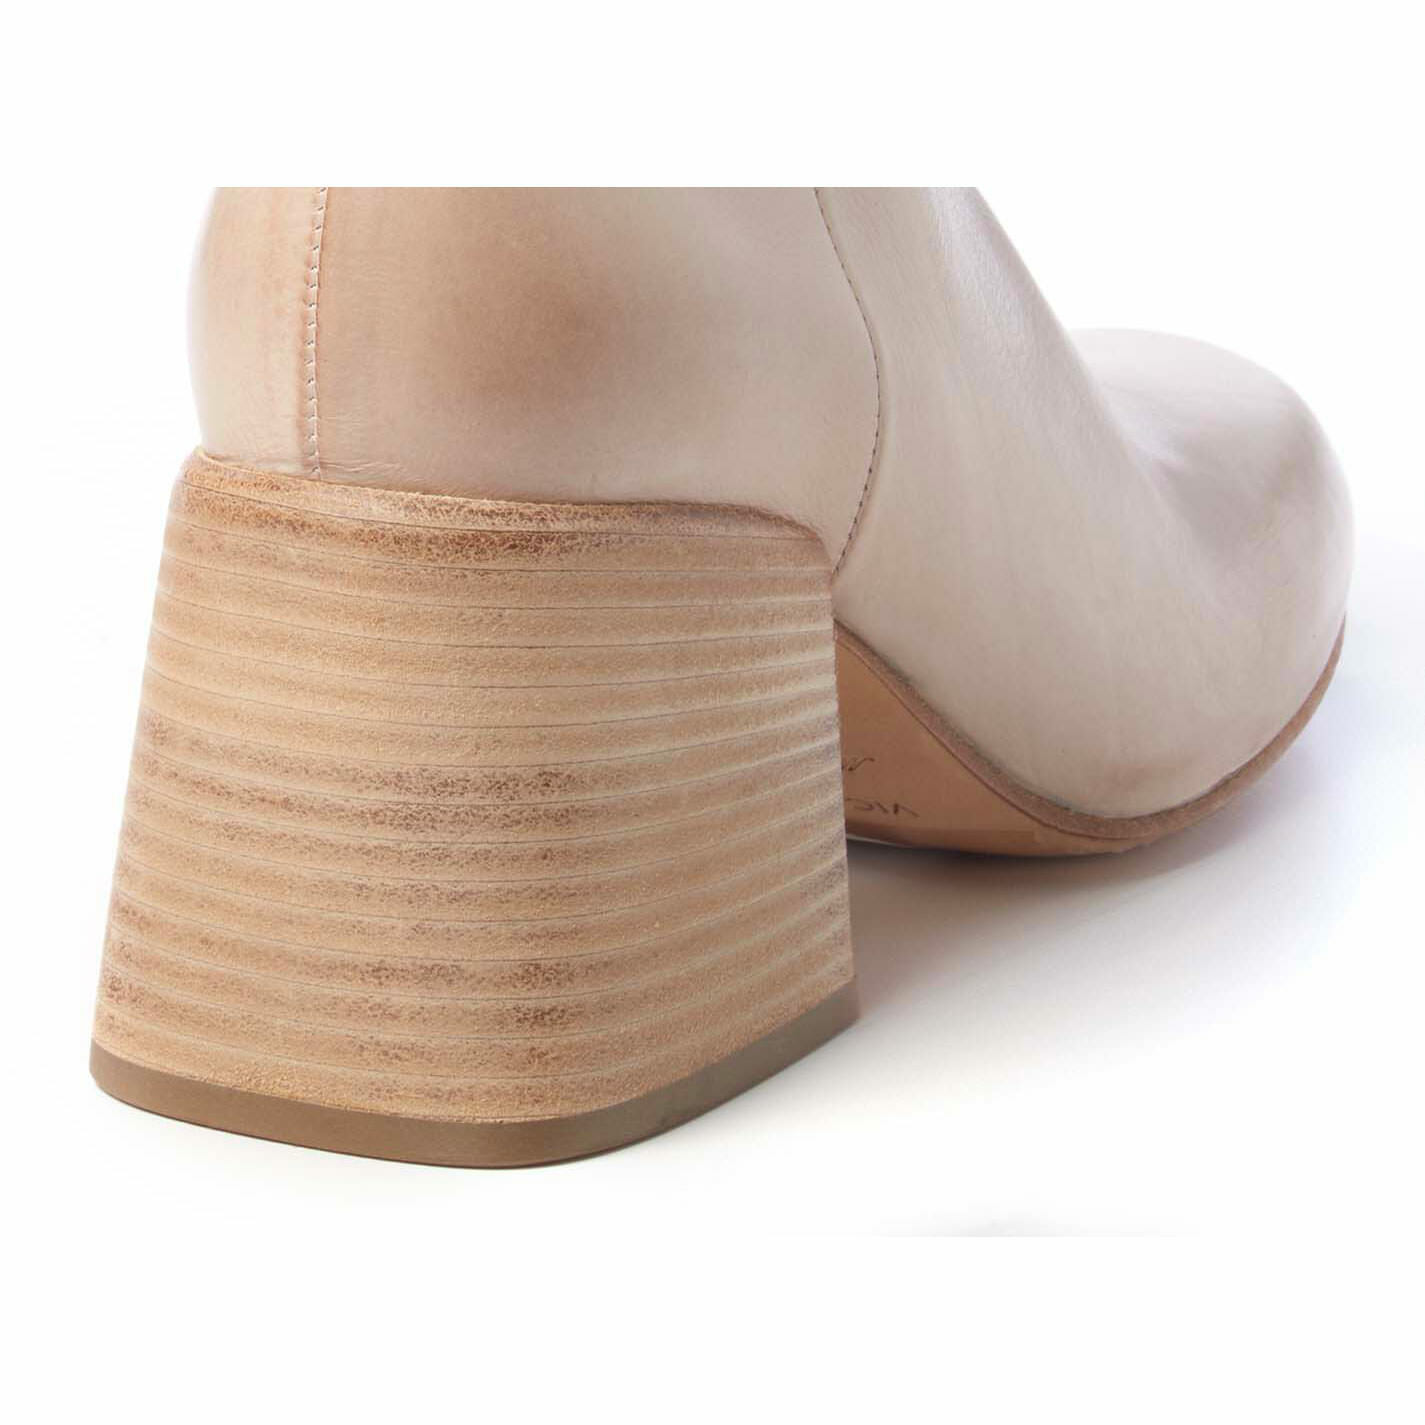 Urban ankle boots in ivory-coloured calfskin